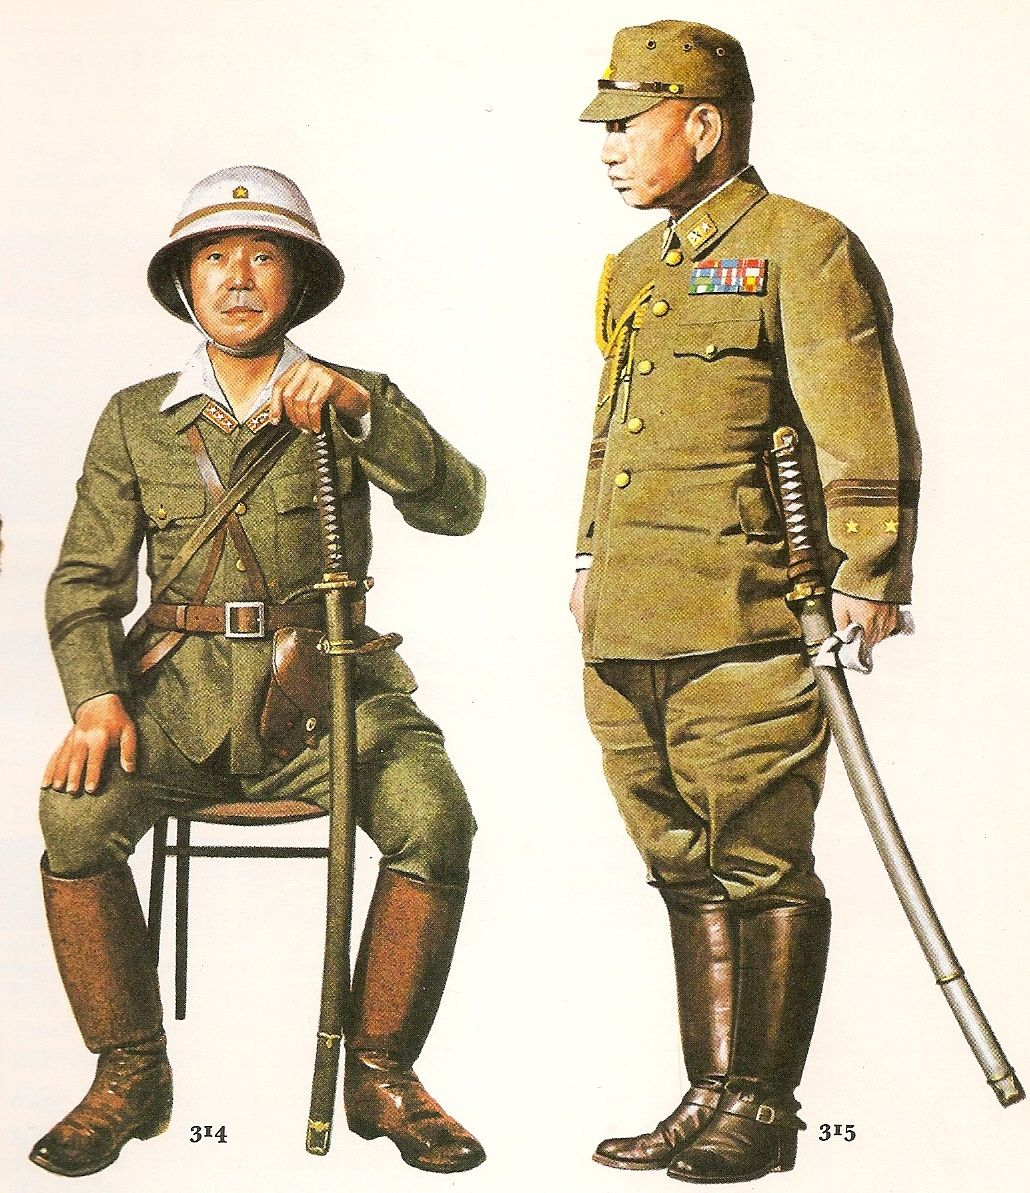 Japanese Army Officer Canteens Japanese Army 1944 Nº 315 Lieutenan General Japanes Uniformes Militares Ilustracion Militar Uniformes Militares Espanoles